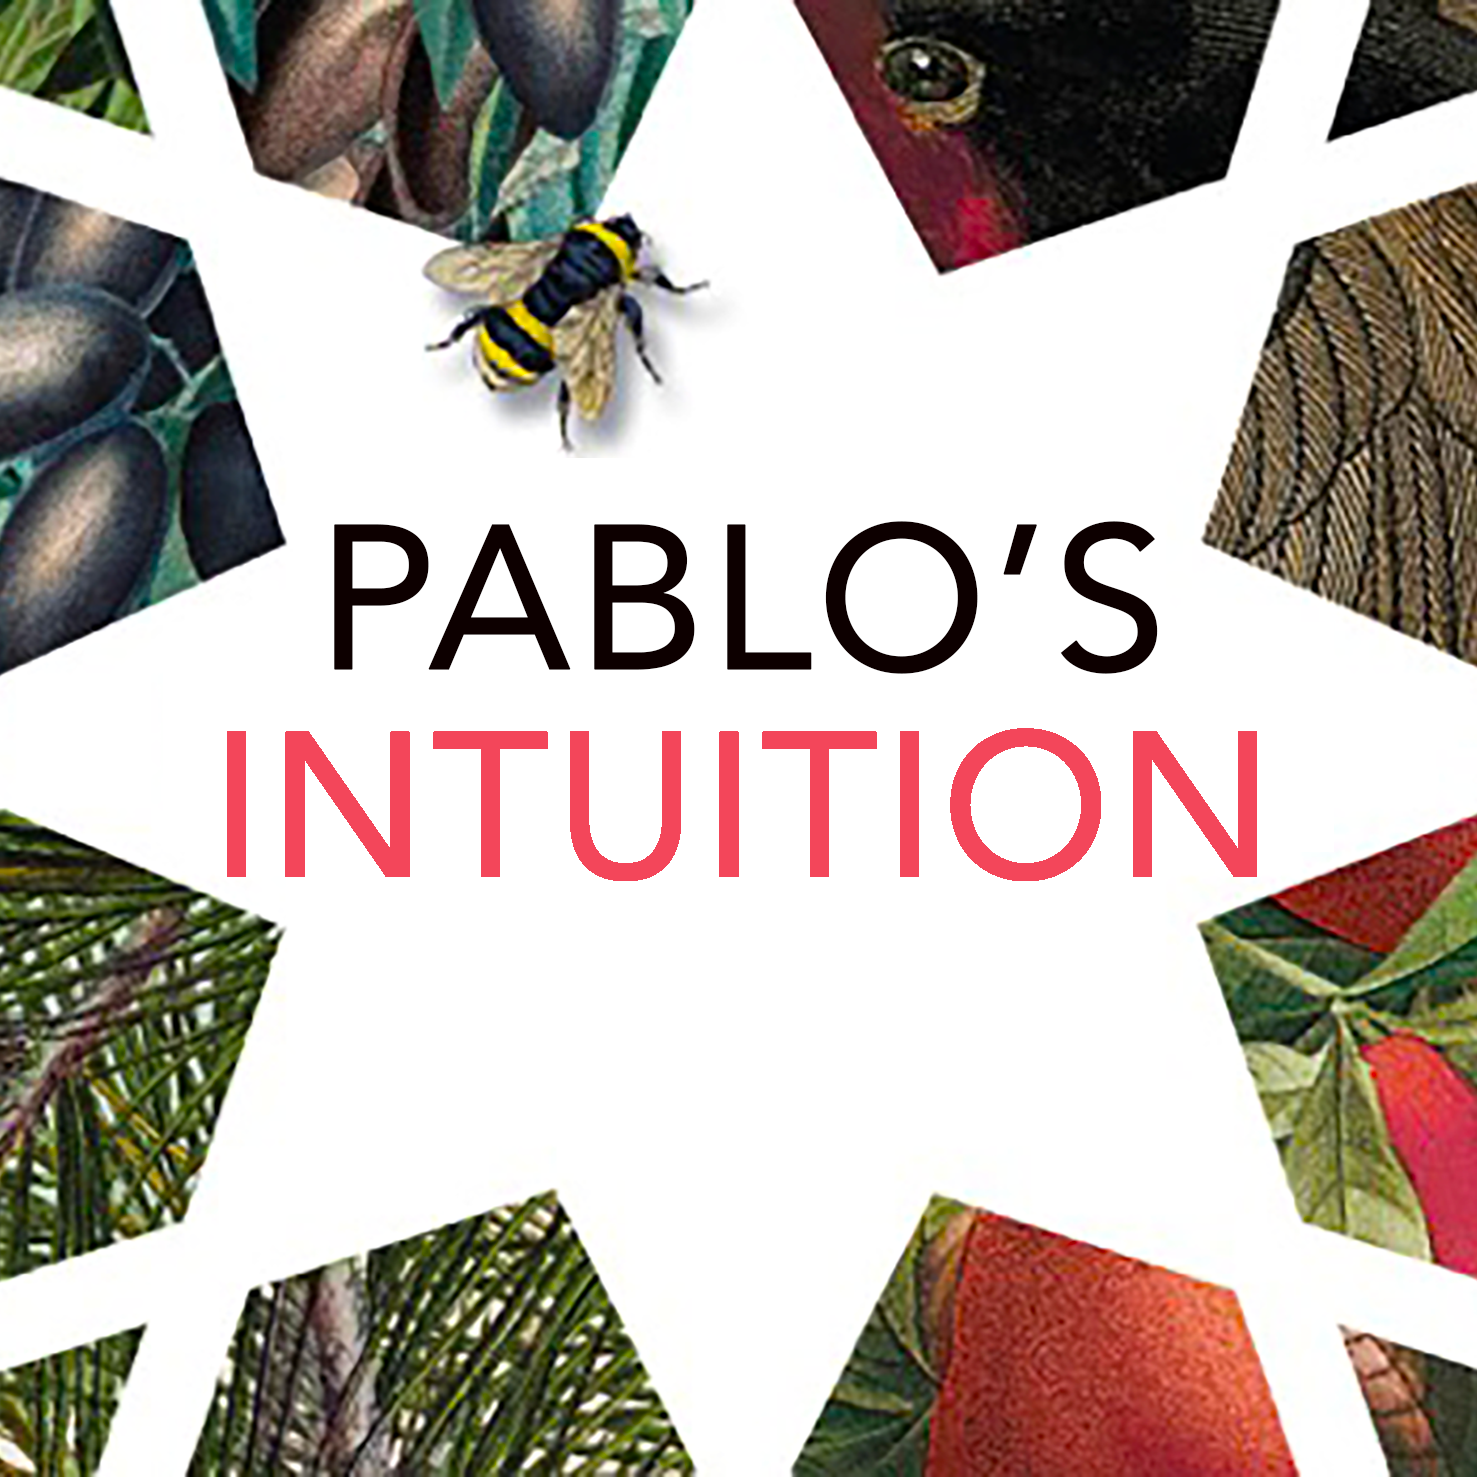 Pablo's Intuition podcast logo